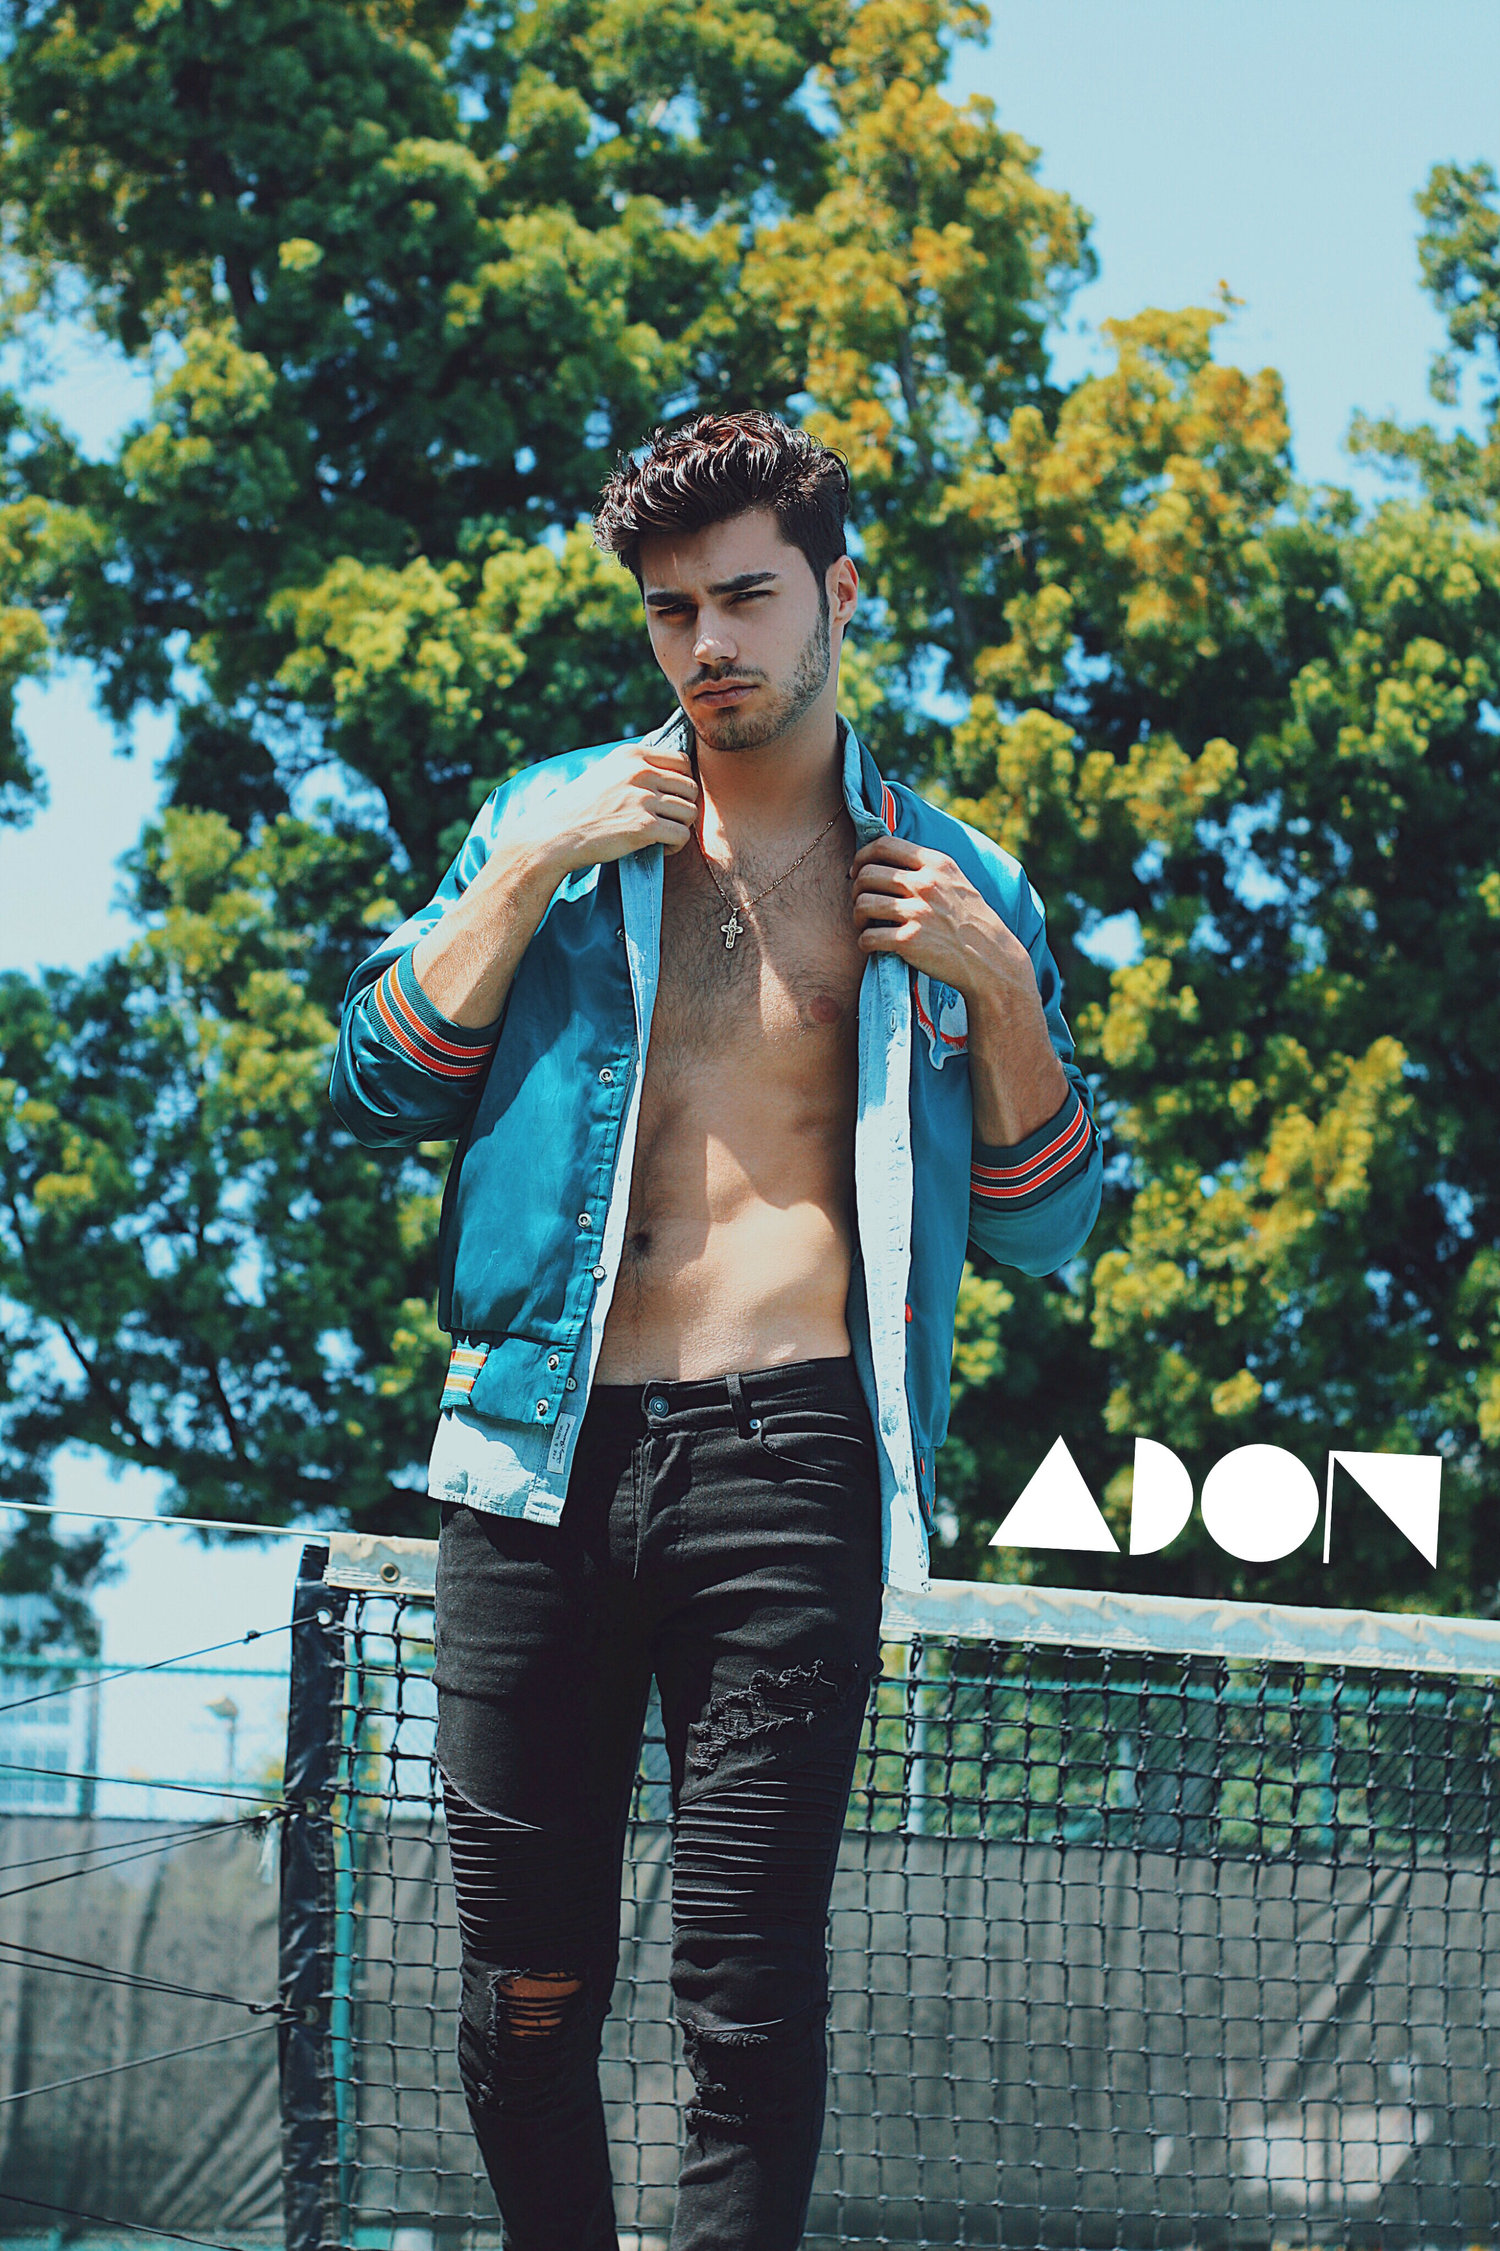 Adon Exclusive: Model Jay Wynter By Luis Lucas